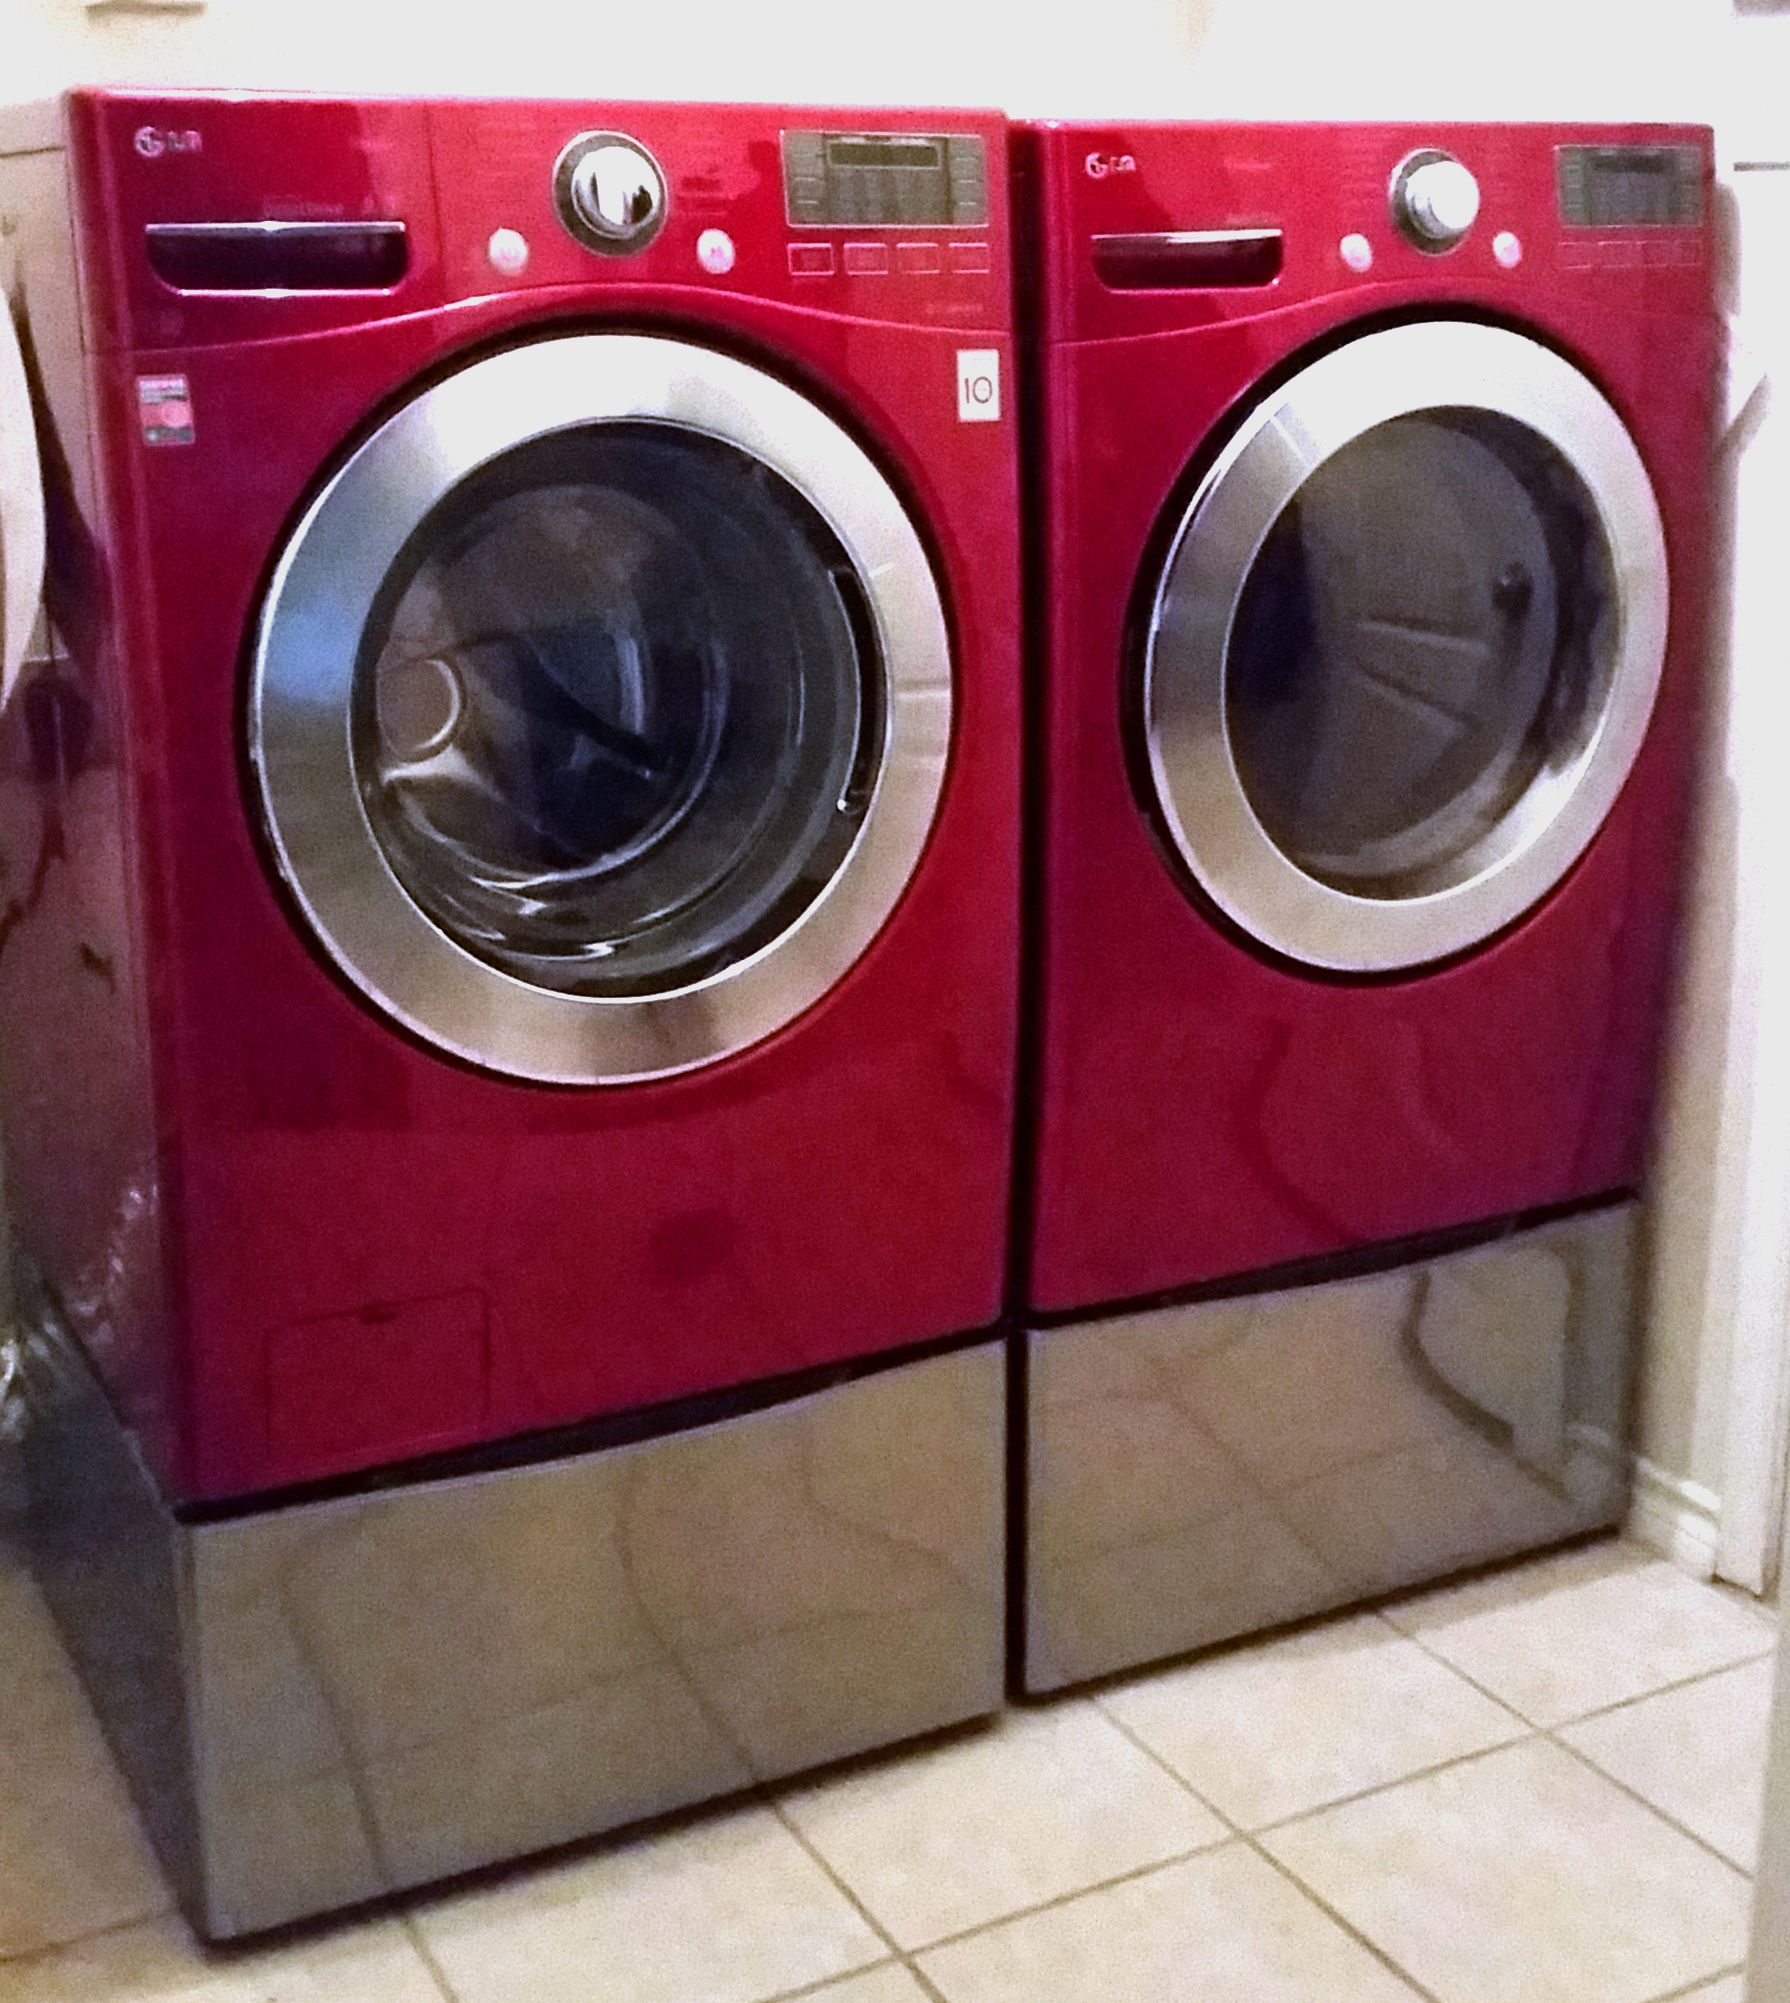 Cherry Red Lg Washer And Dryer With Graphite Pedestals Laundry